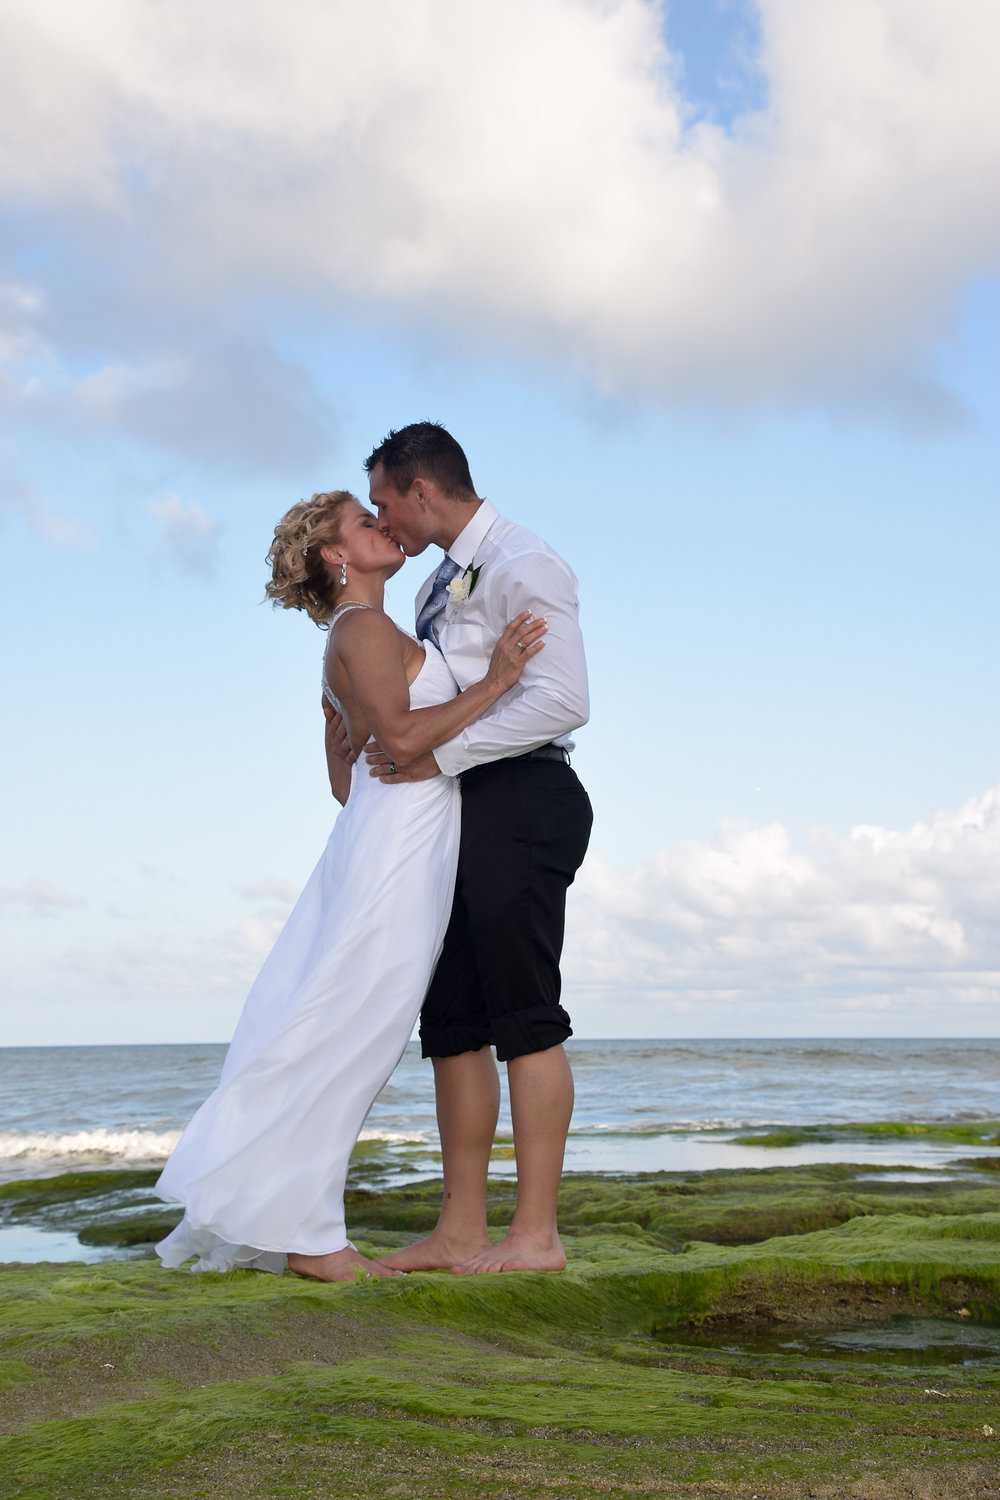 - Bride and groom sharing a kiss on the Coquina Rocks at low tide in Kure Beach, NC. Billy Beach Photography. Ocean in the background.